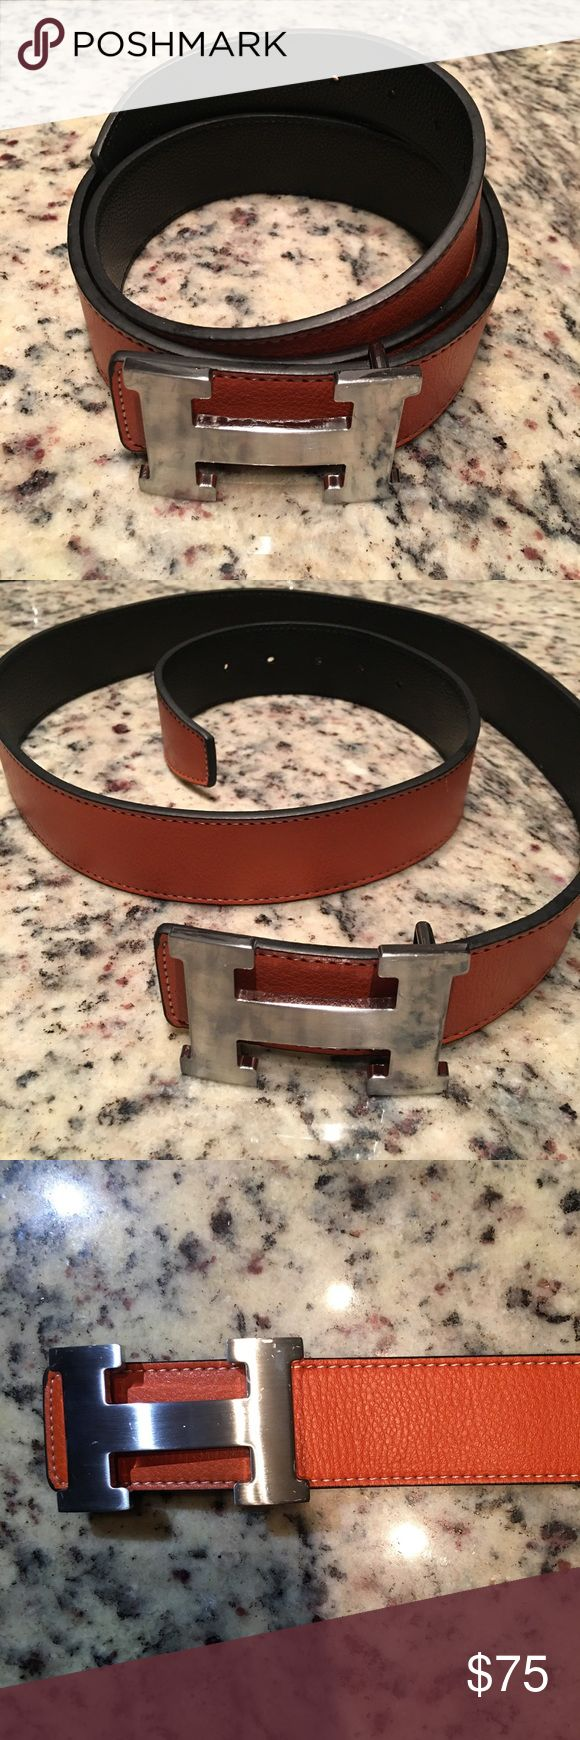 High Quality Hermes belt from Original Collection What you see it's what you'll get. Beautiful Top quality Hermes from original versions. Oranges belt with silver buckle in size 47 inches / 120 centimeters and I can make extra wholes to adjust to smaller size... Hermes Accessories Belts